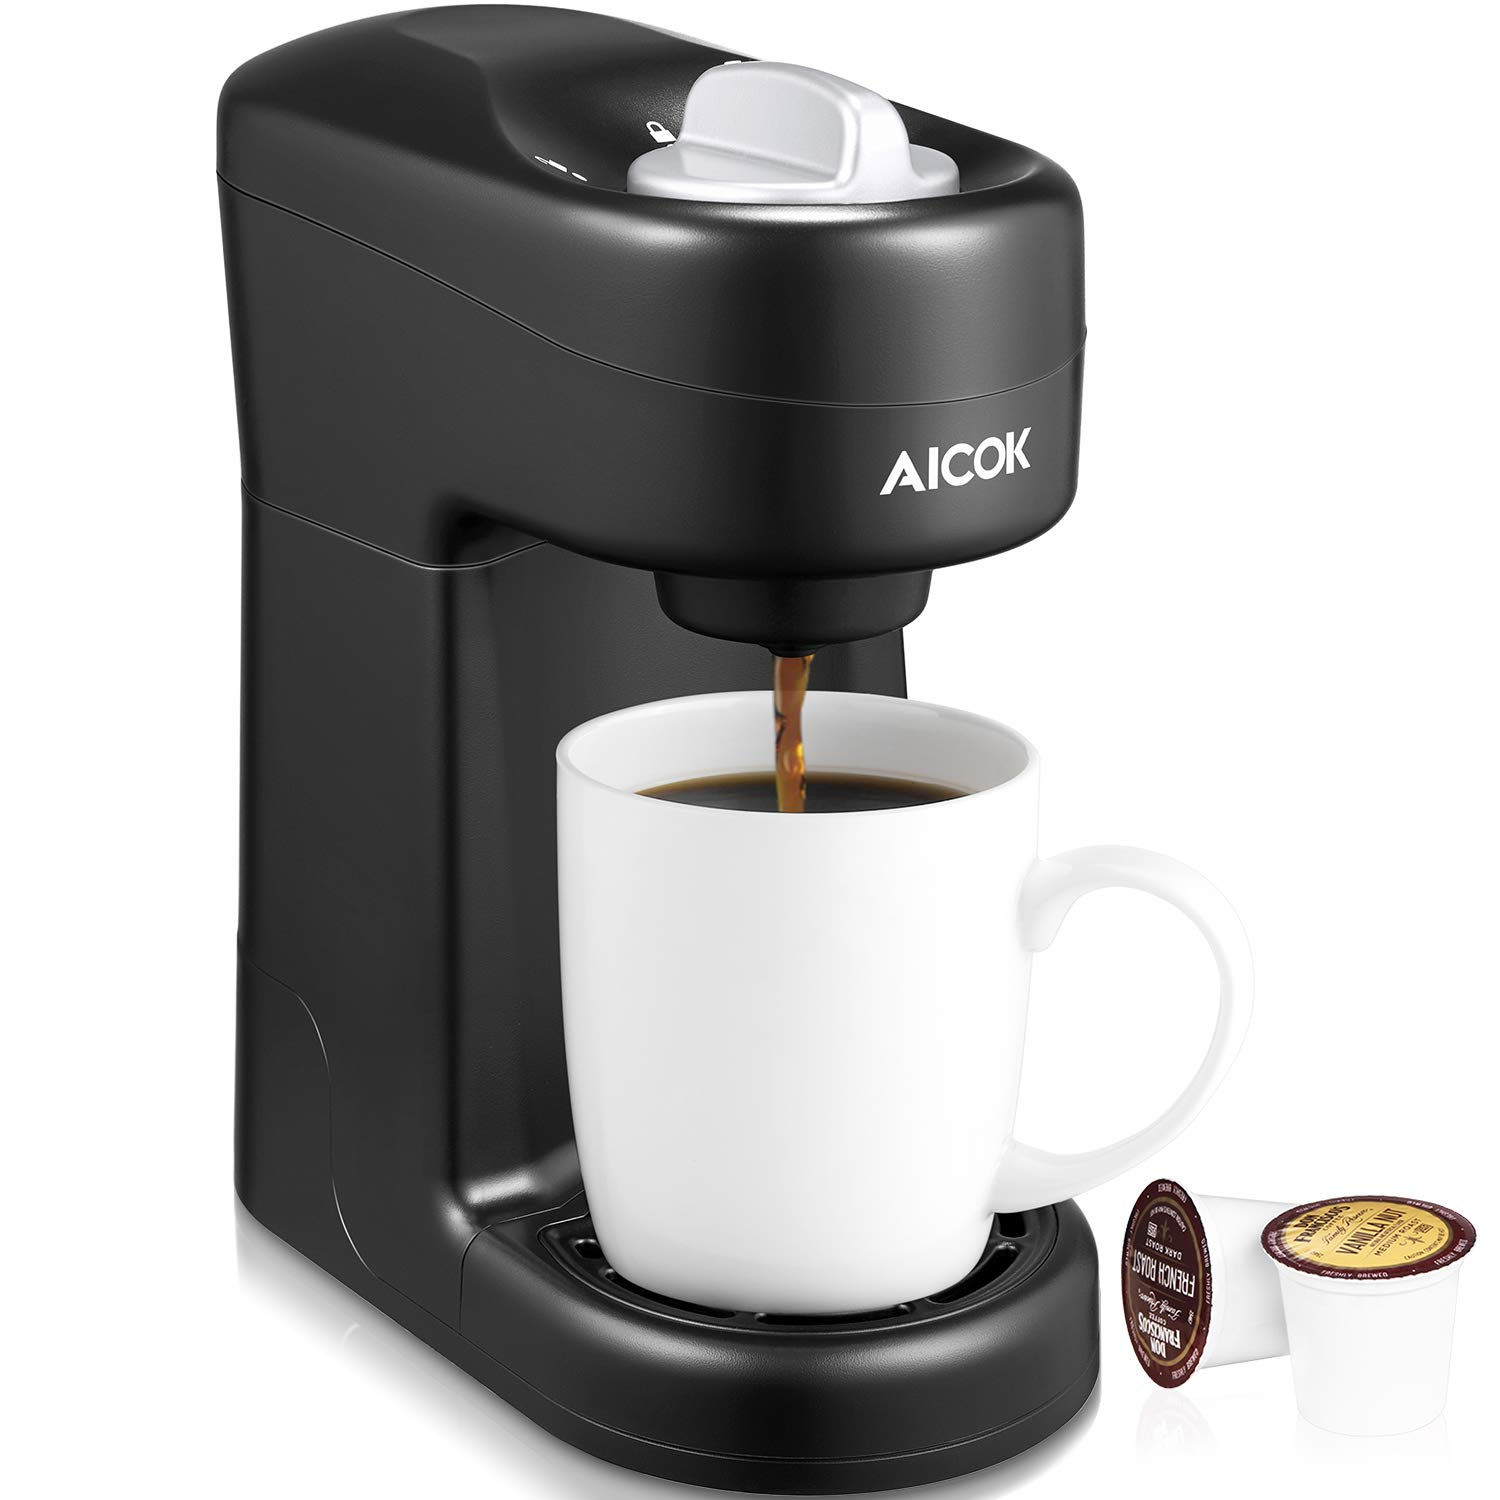 Aicok Single Serve Coffee Maker, Single Cup Coffee Brewer with One-Touch Buttons for Most Single Cup Pods including K-CUP Pods, Quick Brew Technology, 800W, Black